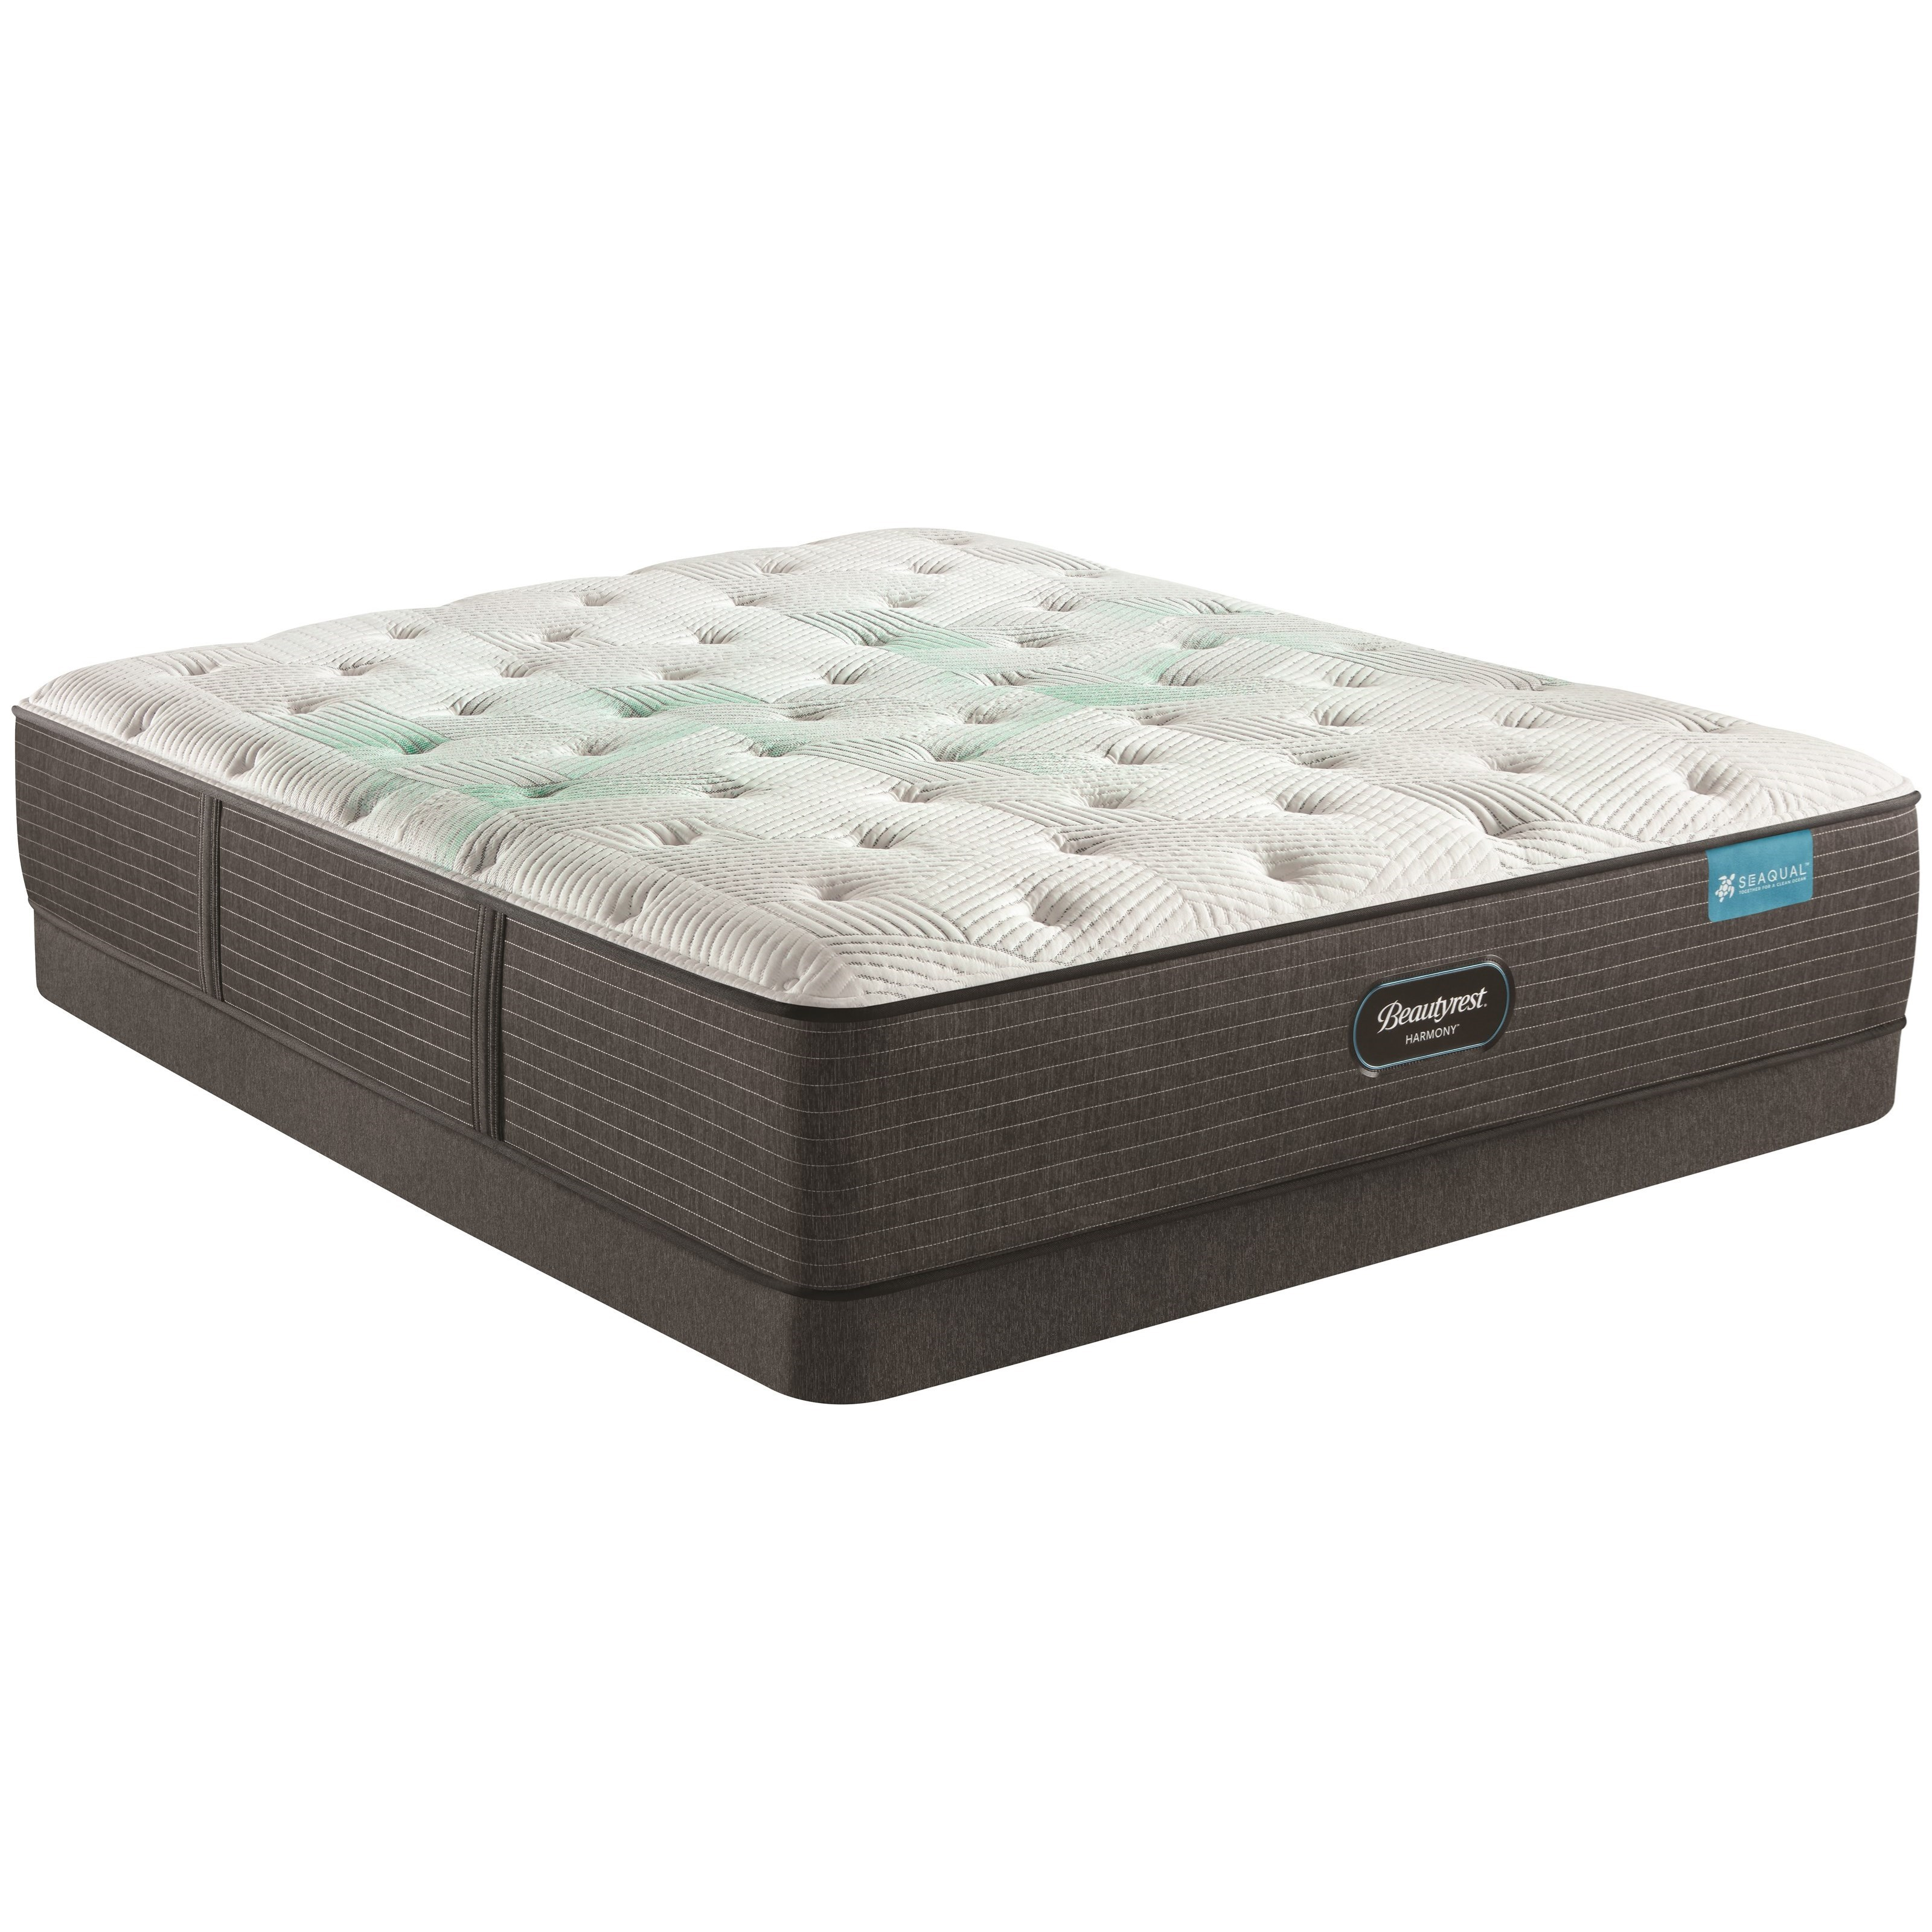 "Cayman Series Medium TT Full 13 1/2"" Medium Low Profile Set by Beautyrest at Becker Furniture"